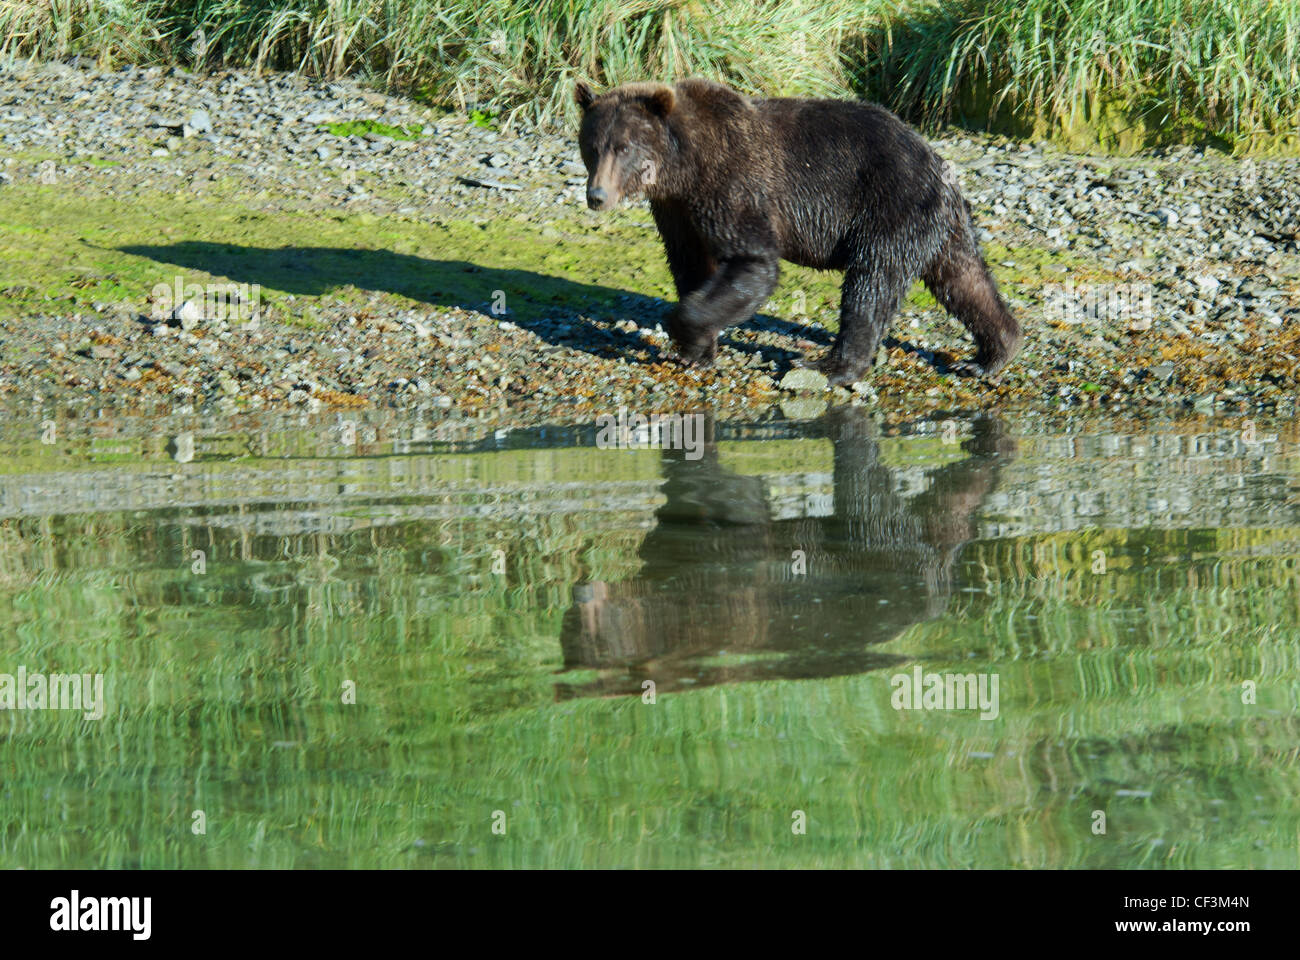 Grizzly bear walking - photo#49